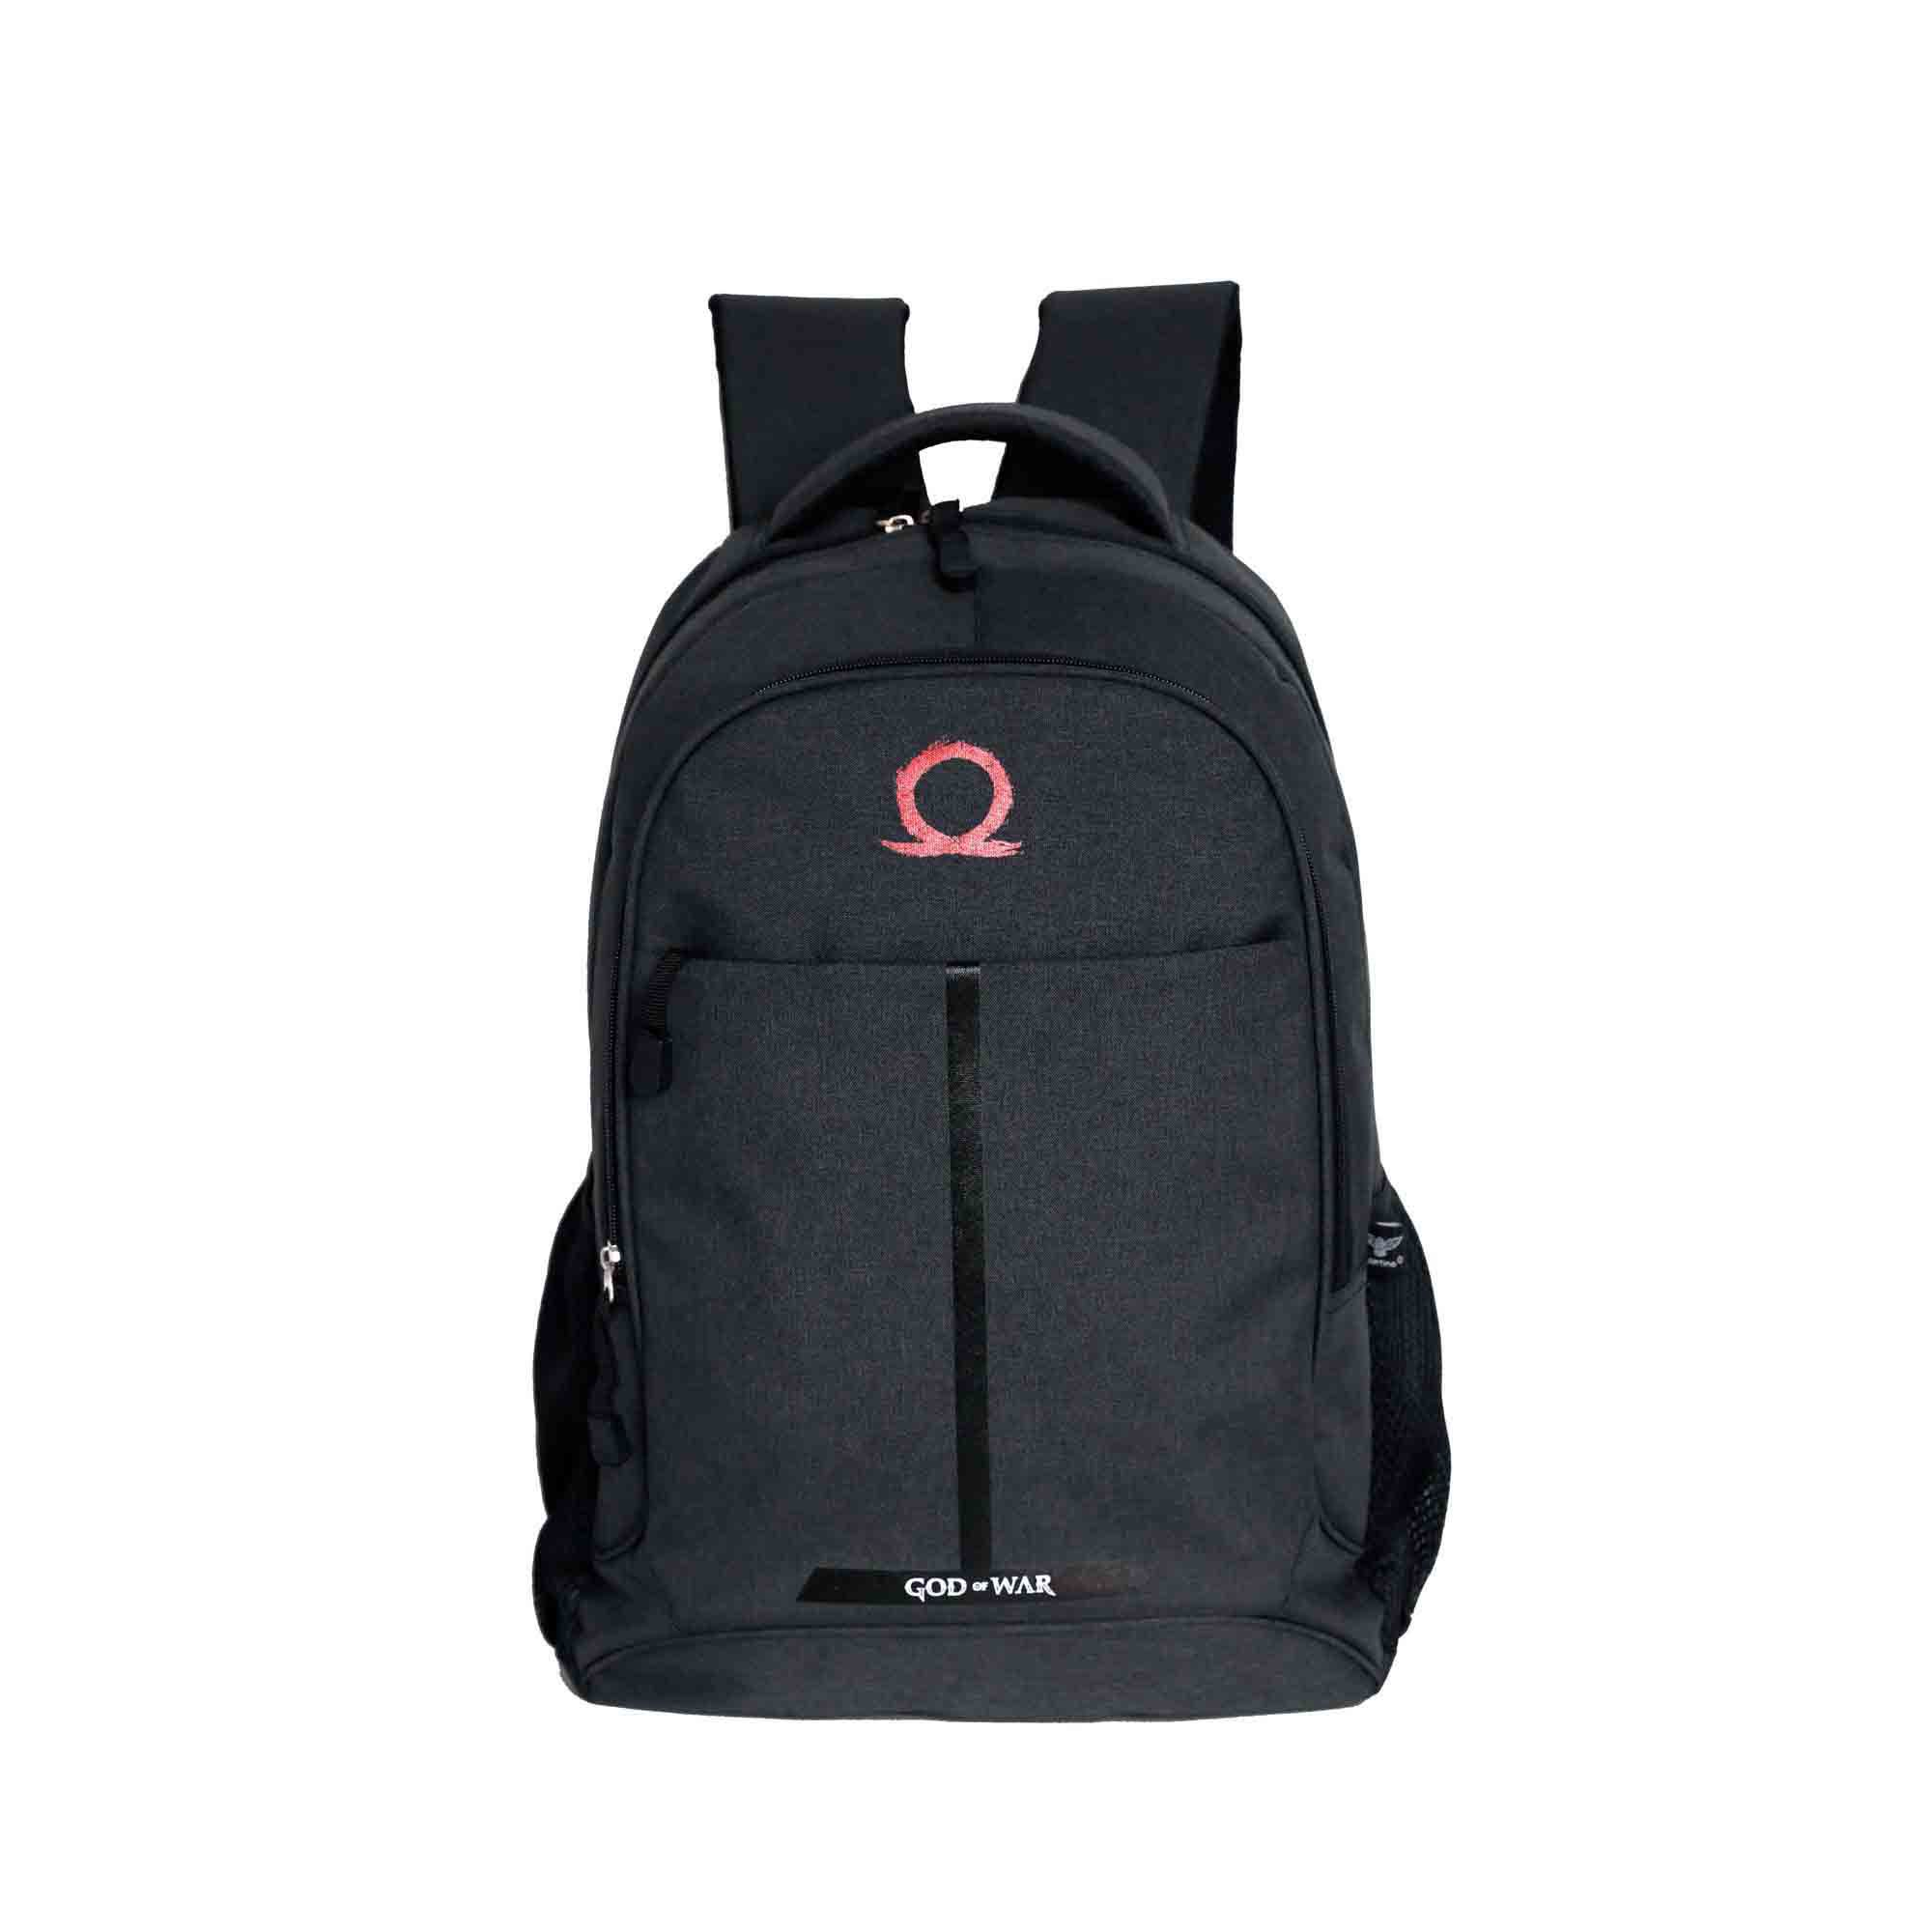 Mochila de Costas Escolar Juvenil God Of War Preto Original